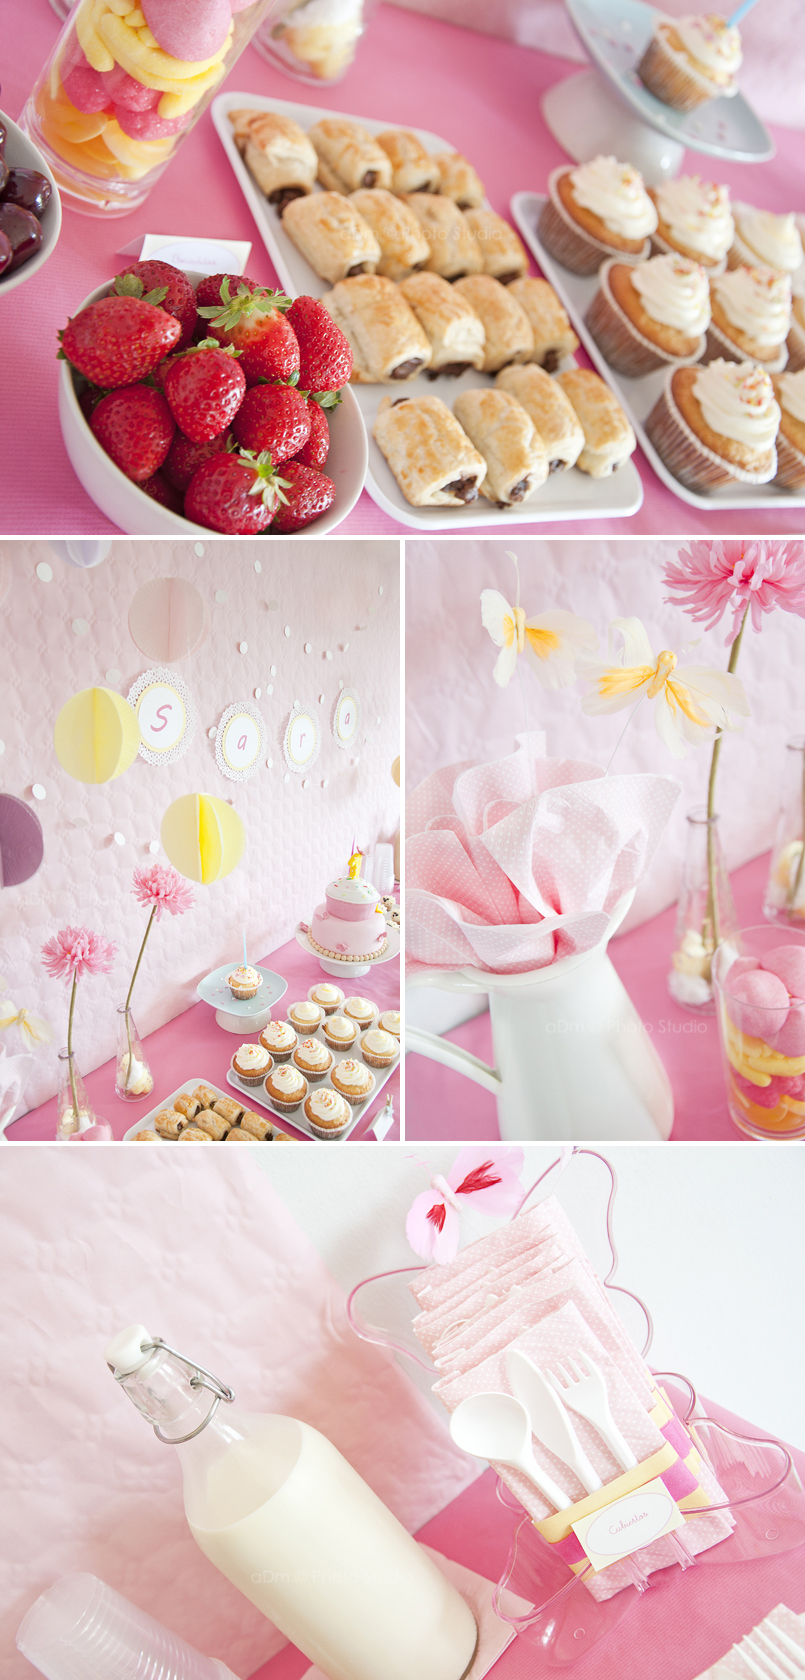 FancyParties_PinkParty_04